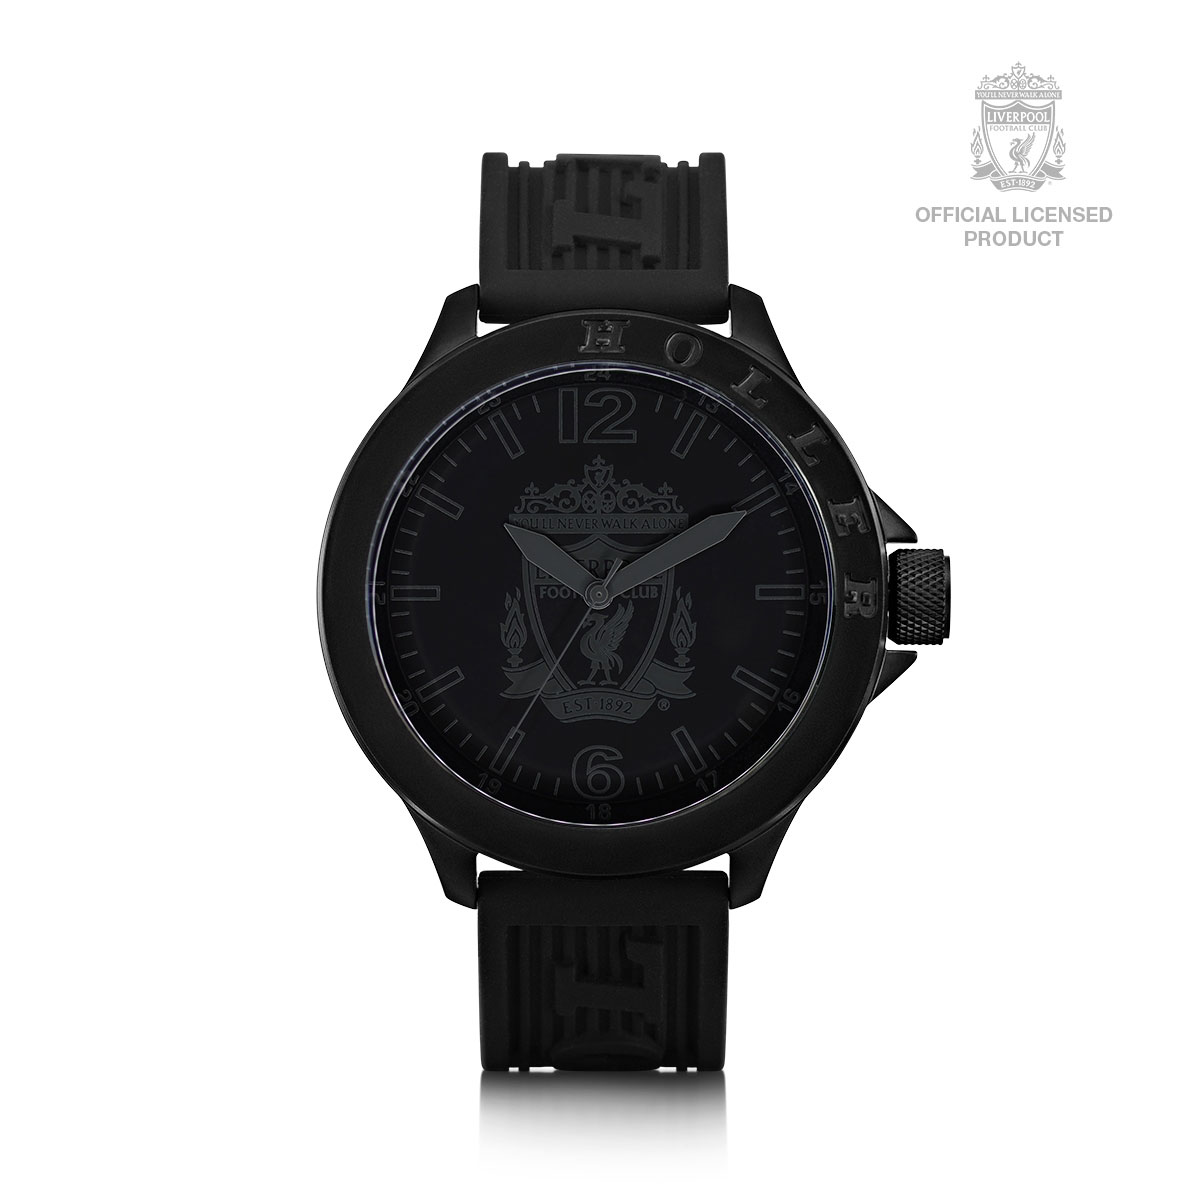 Melwood Liverpool FC Watch 2